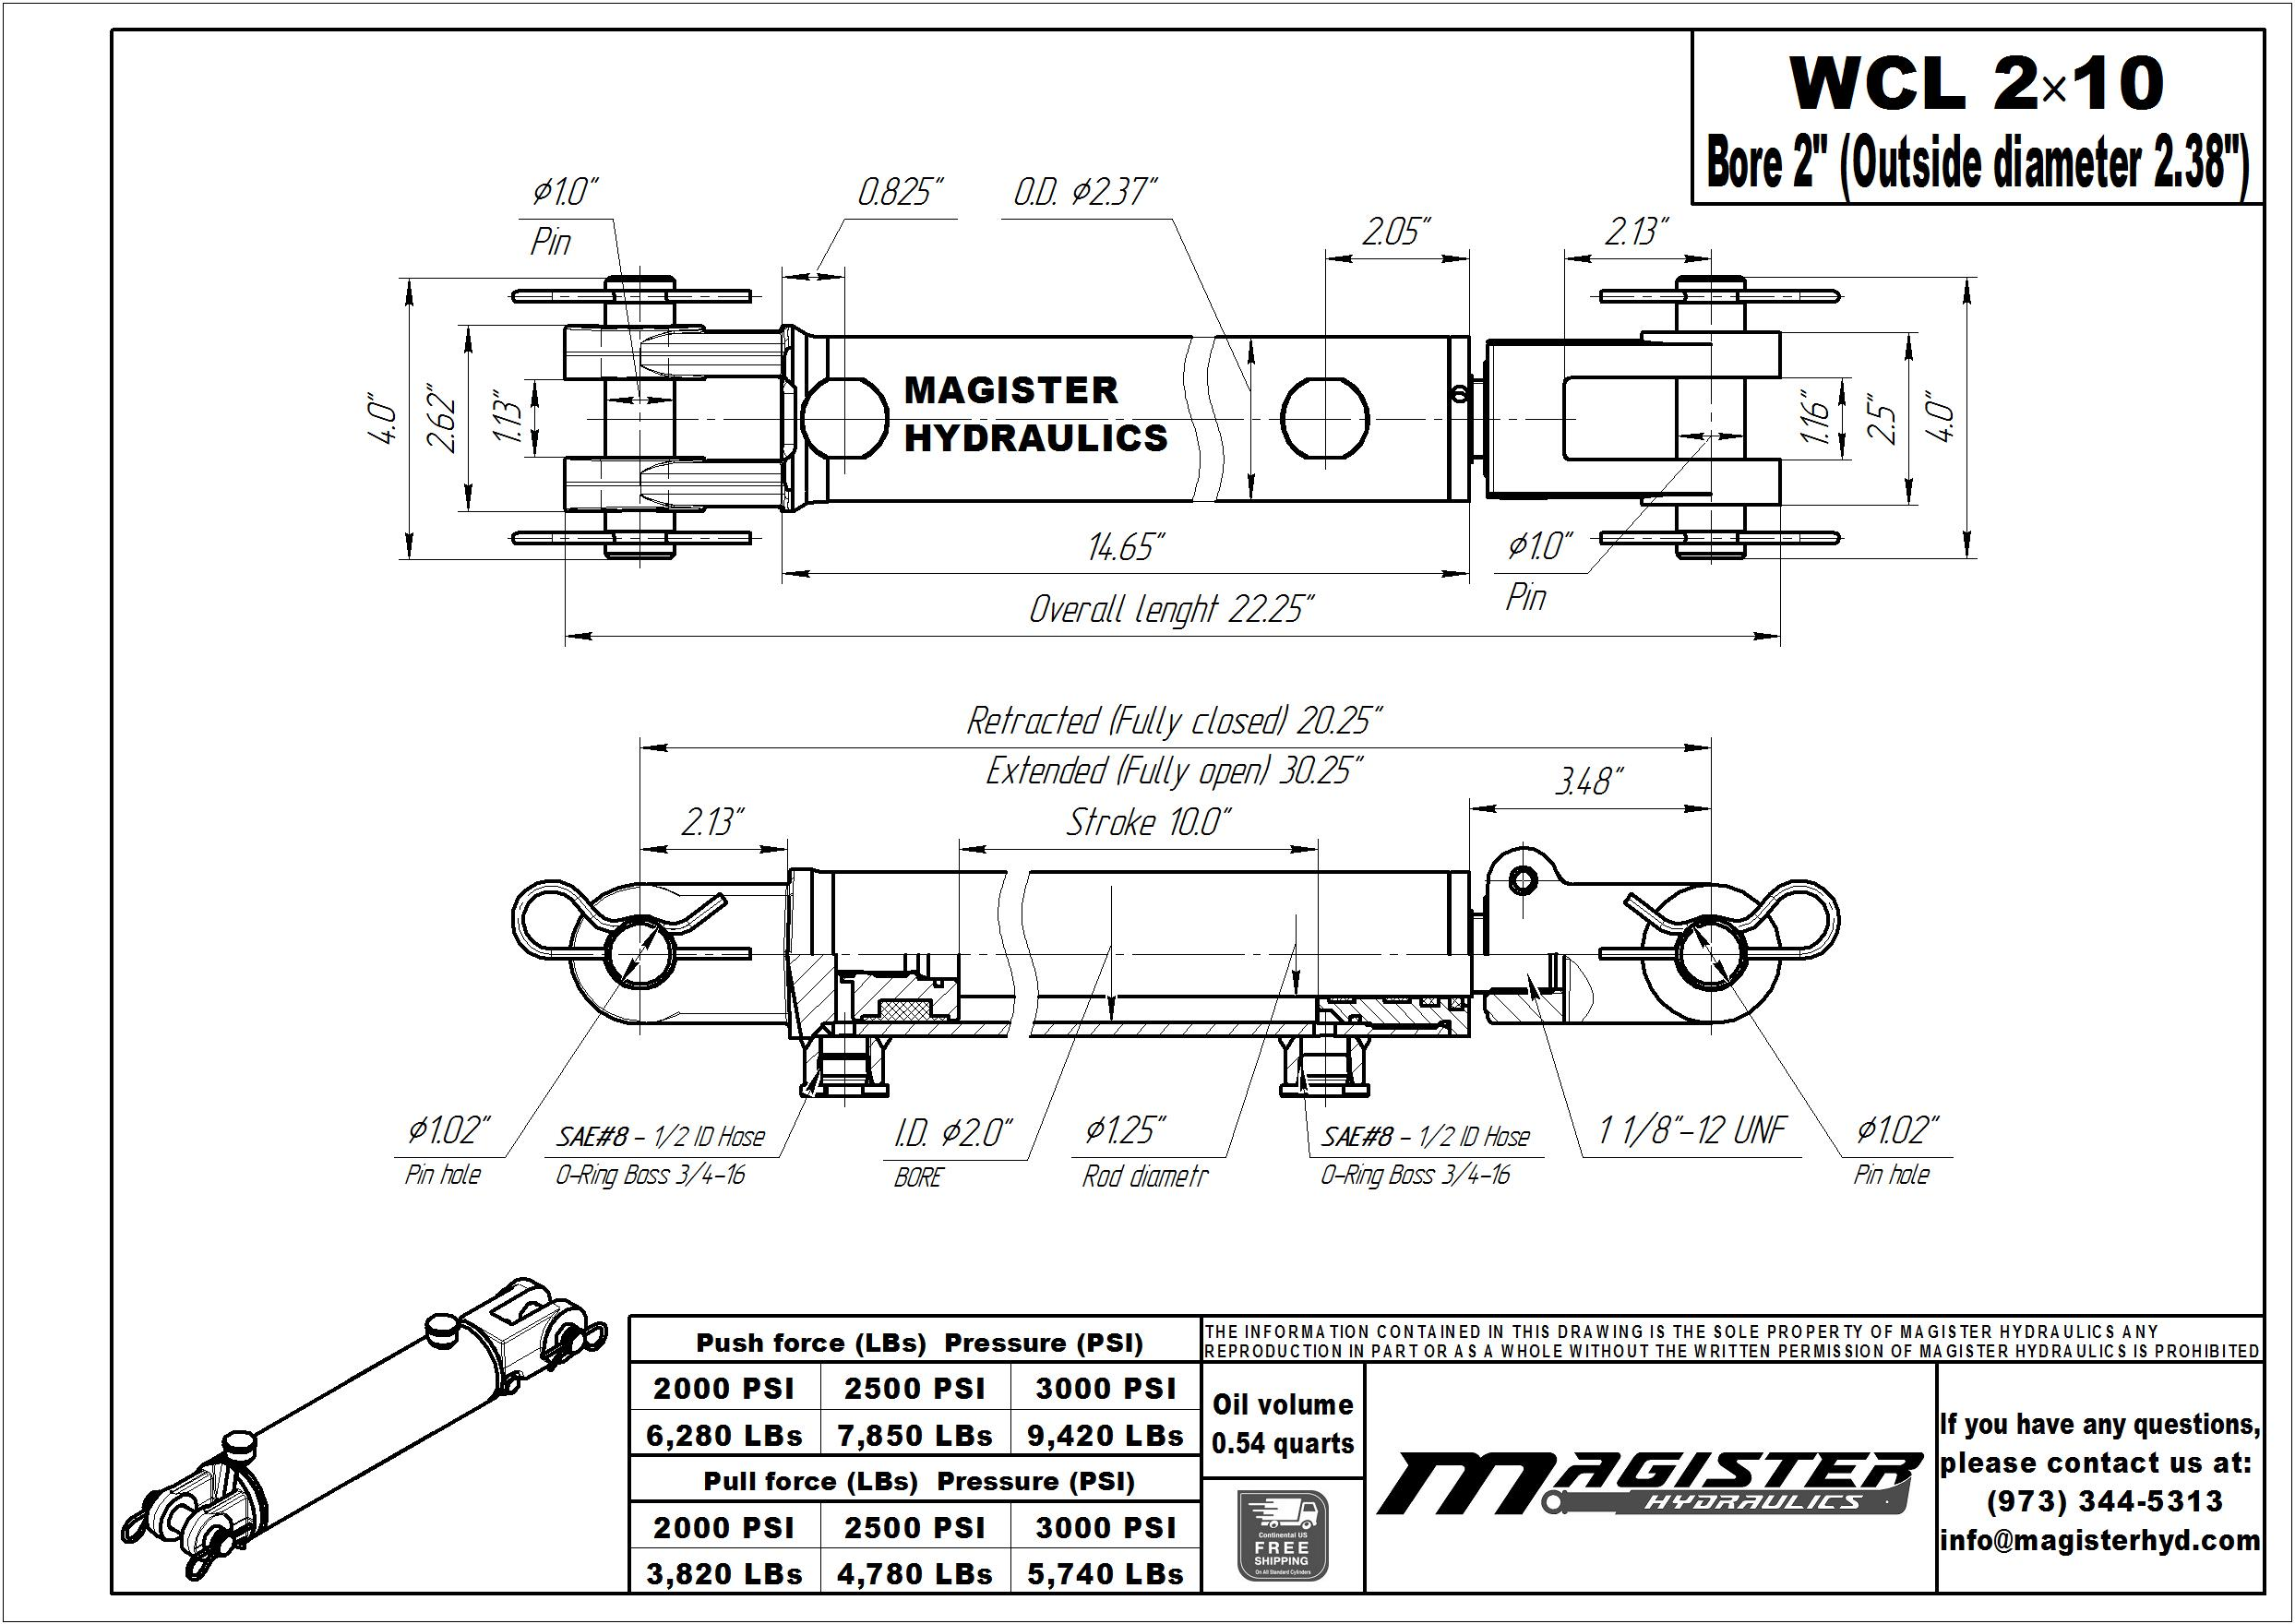 2 bore x 10 stroke hydraulic cylinder, welded clevis double acting cylinder | Magister Hydraulics